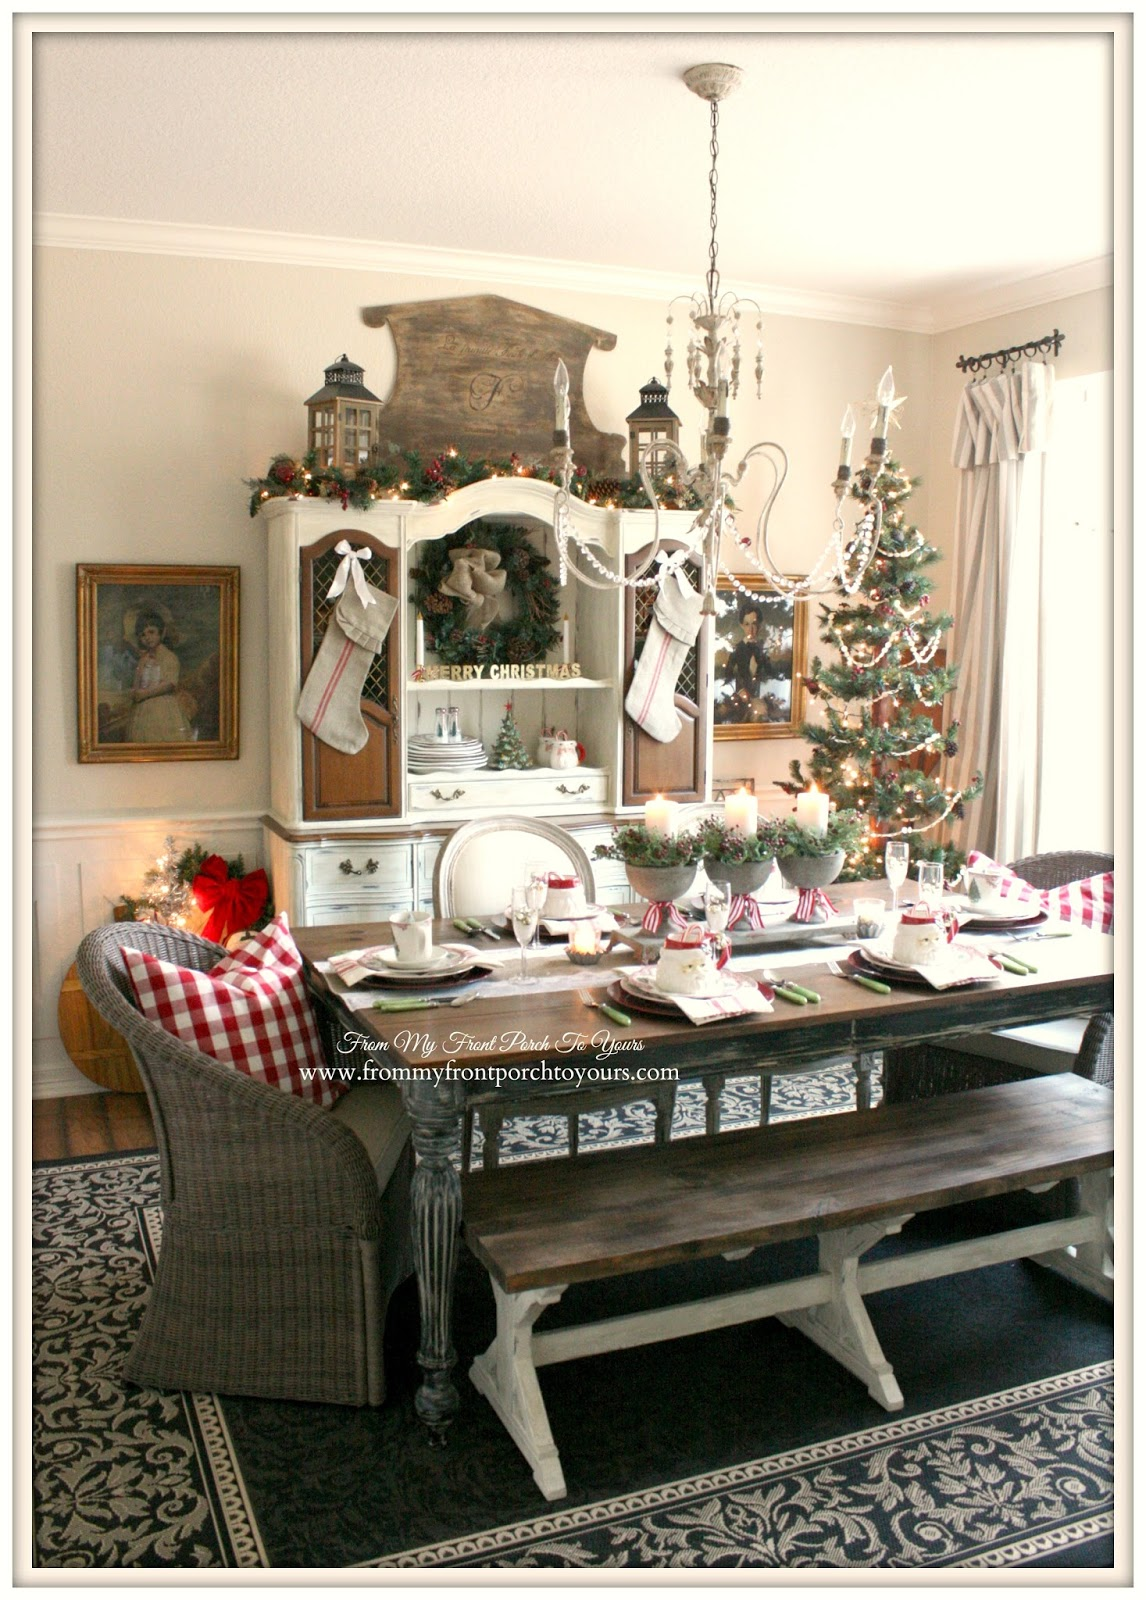 From my front porch to yours french farmhouse vintage for House table decorations